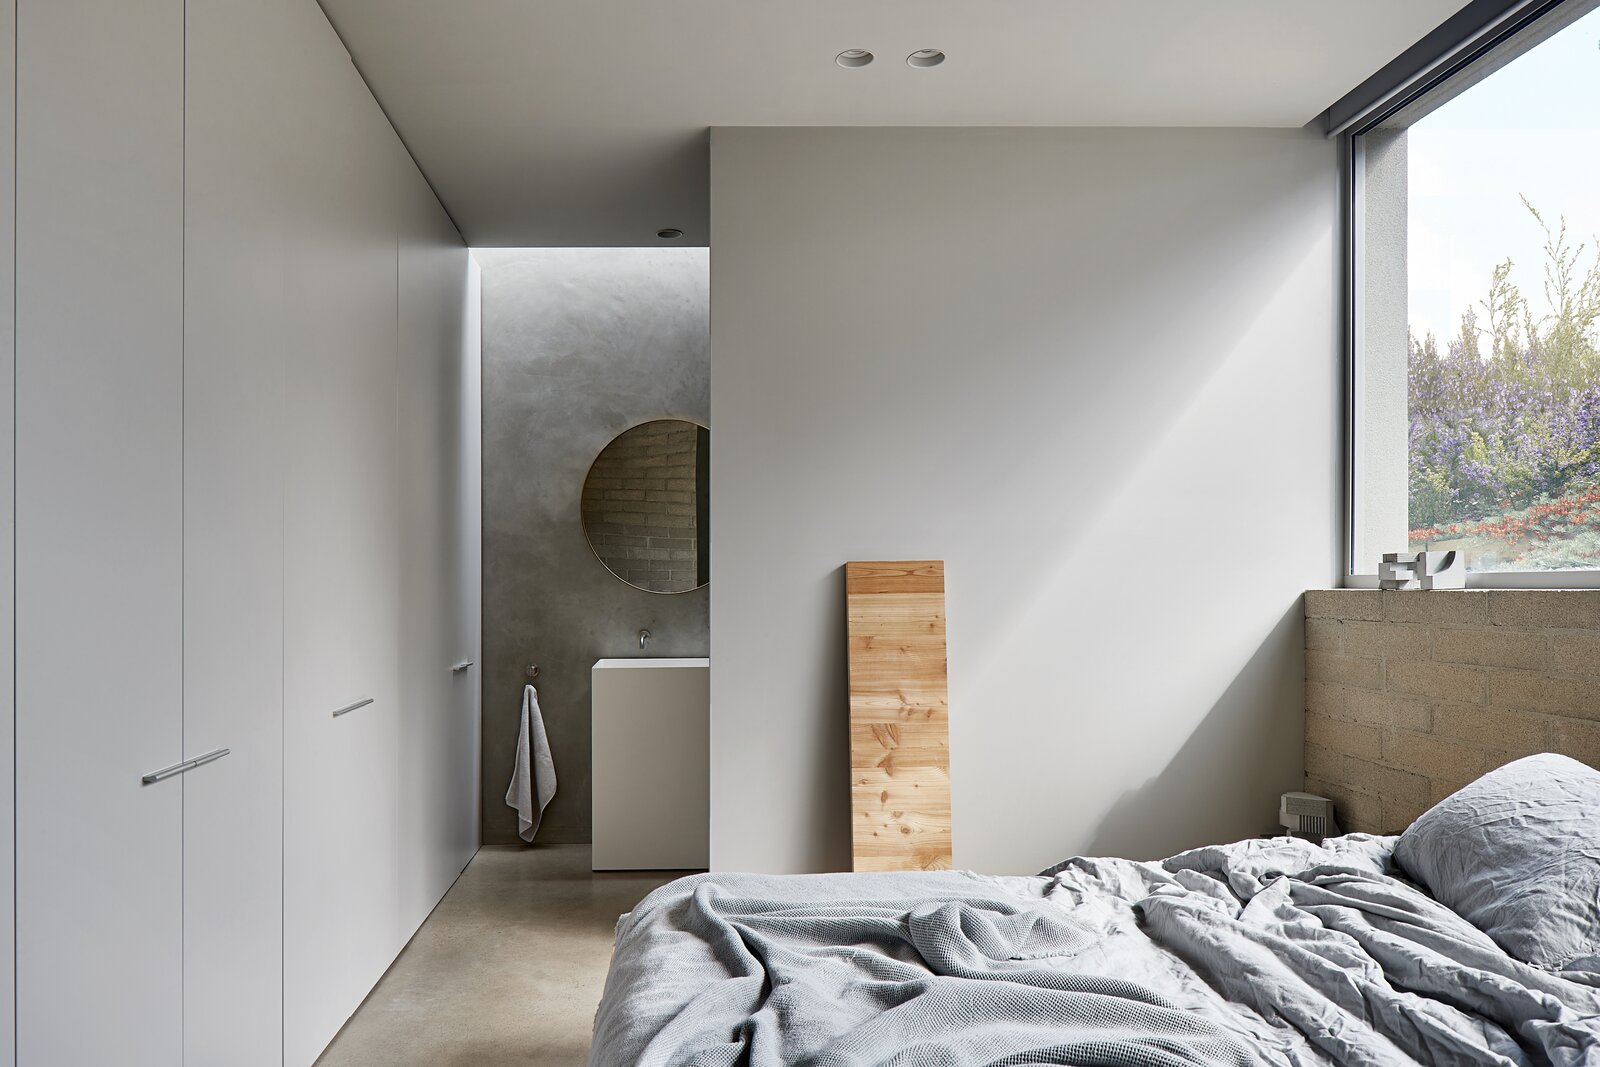 Bedroom, Bed, Storage, Concrete Floor, Recessed Lighting, and Ceiling Lighting  Ruxton Rise Residence